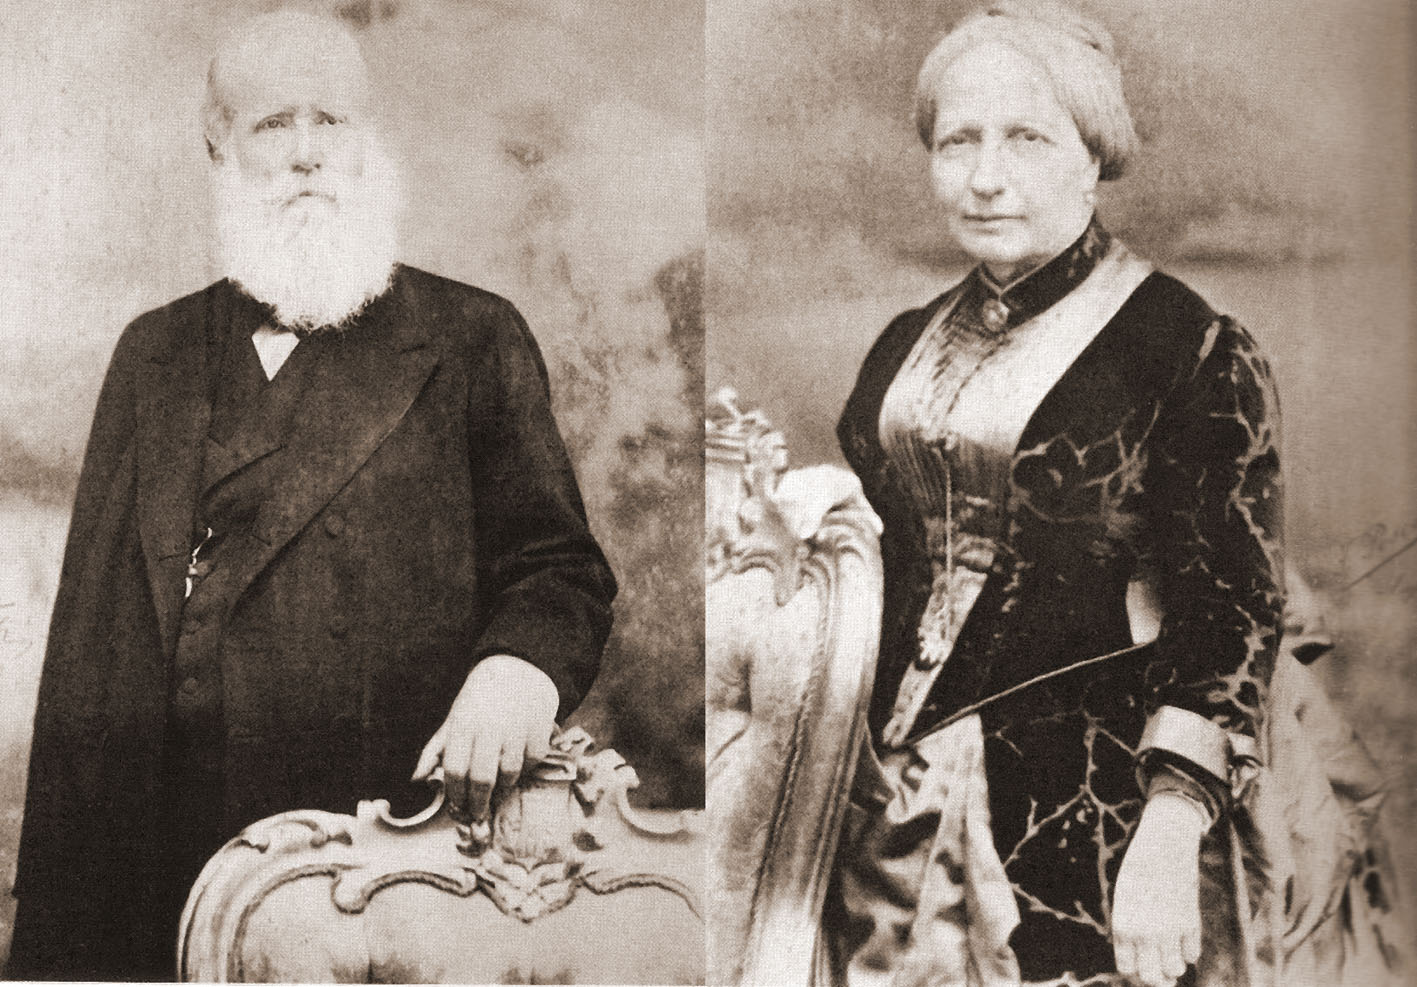 D.Pedro II e Dona Thereza Christina em 1888  <a style='float:right' href='https://www3.al.sp.gov.br/repositorio/noticia/N-11-2013/fg139708.jpg' target=_blank><img src='/_img/material-file-download-white.png' width='14px' alt='Clique para baixar a imagem'></a>